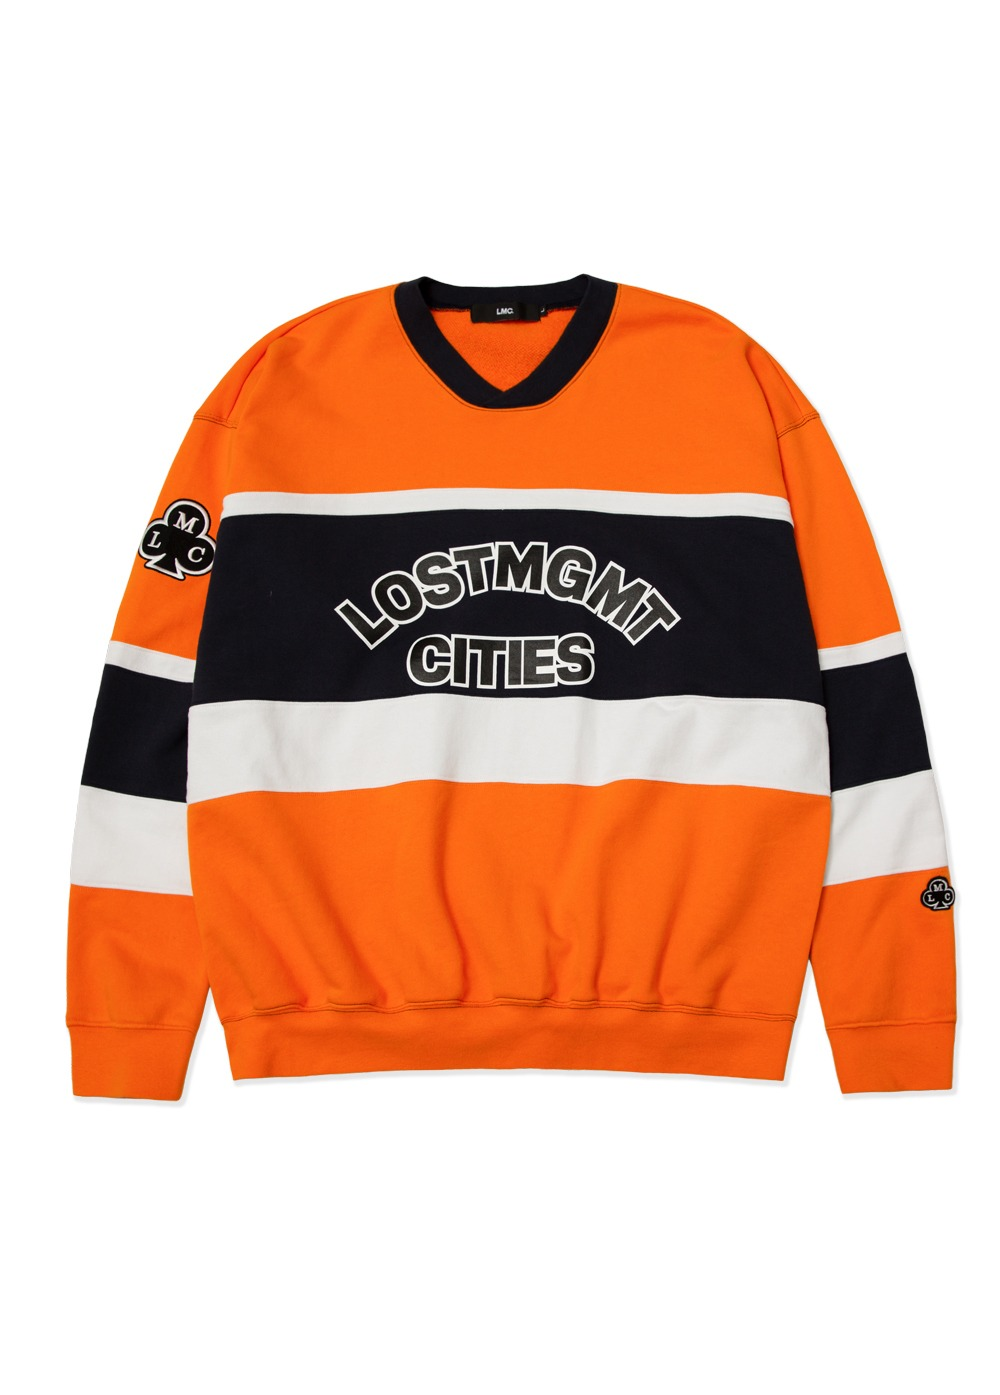 LMC HOCKEY OVERSIZED SWEATSHIRT orange